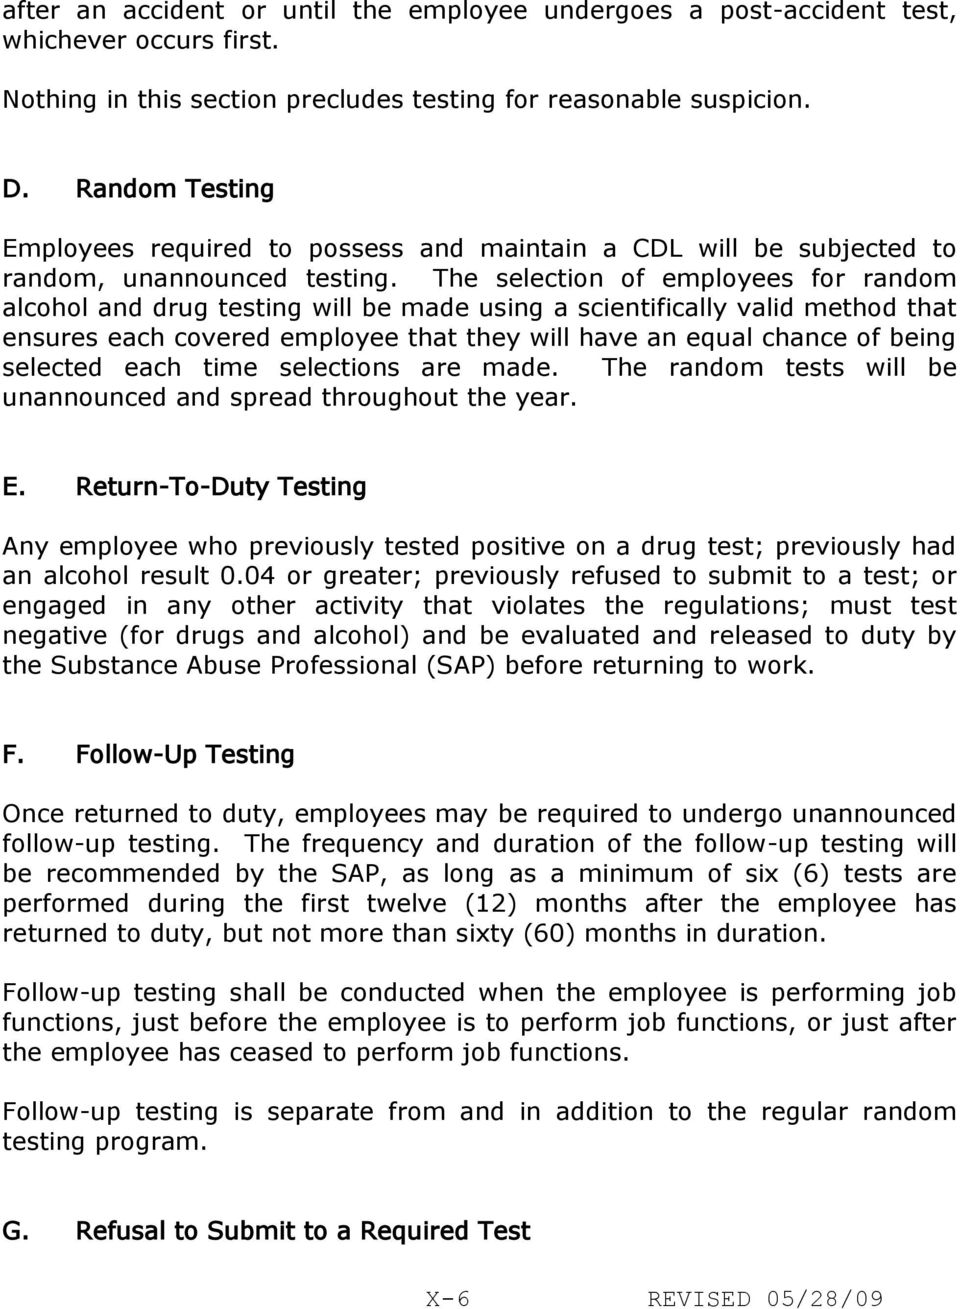 The selection of employees for random alcohol and drug testing will be made using a scientifically valid method that ensures each covered employee that they will have an equal chance of being